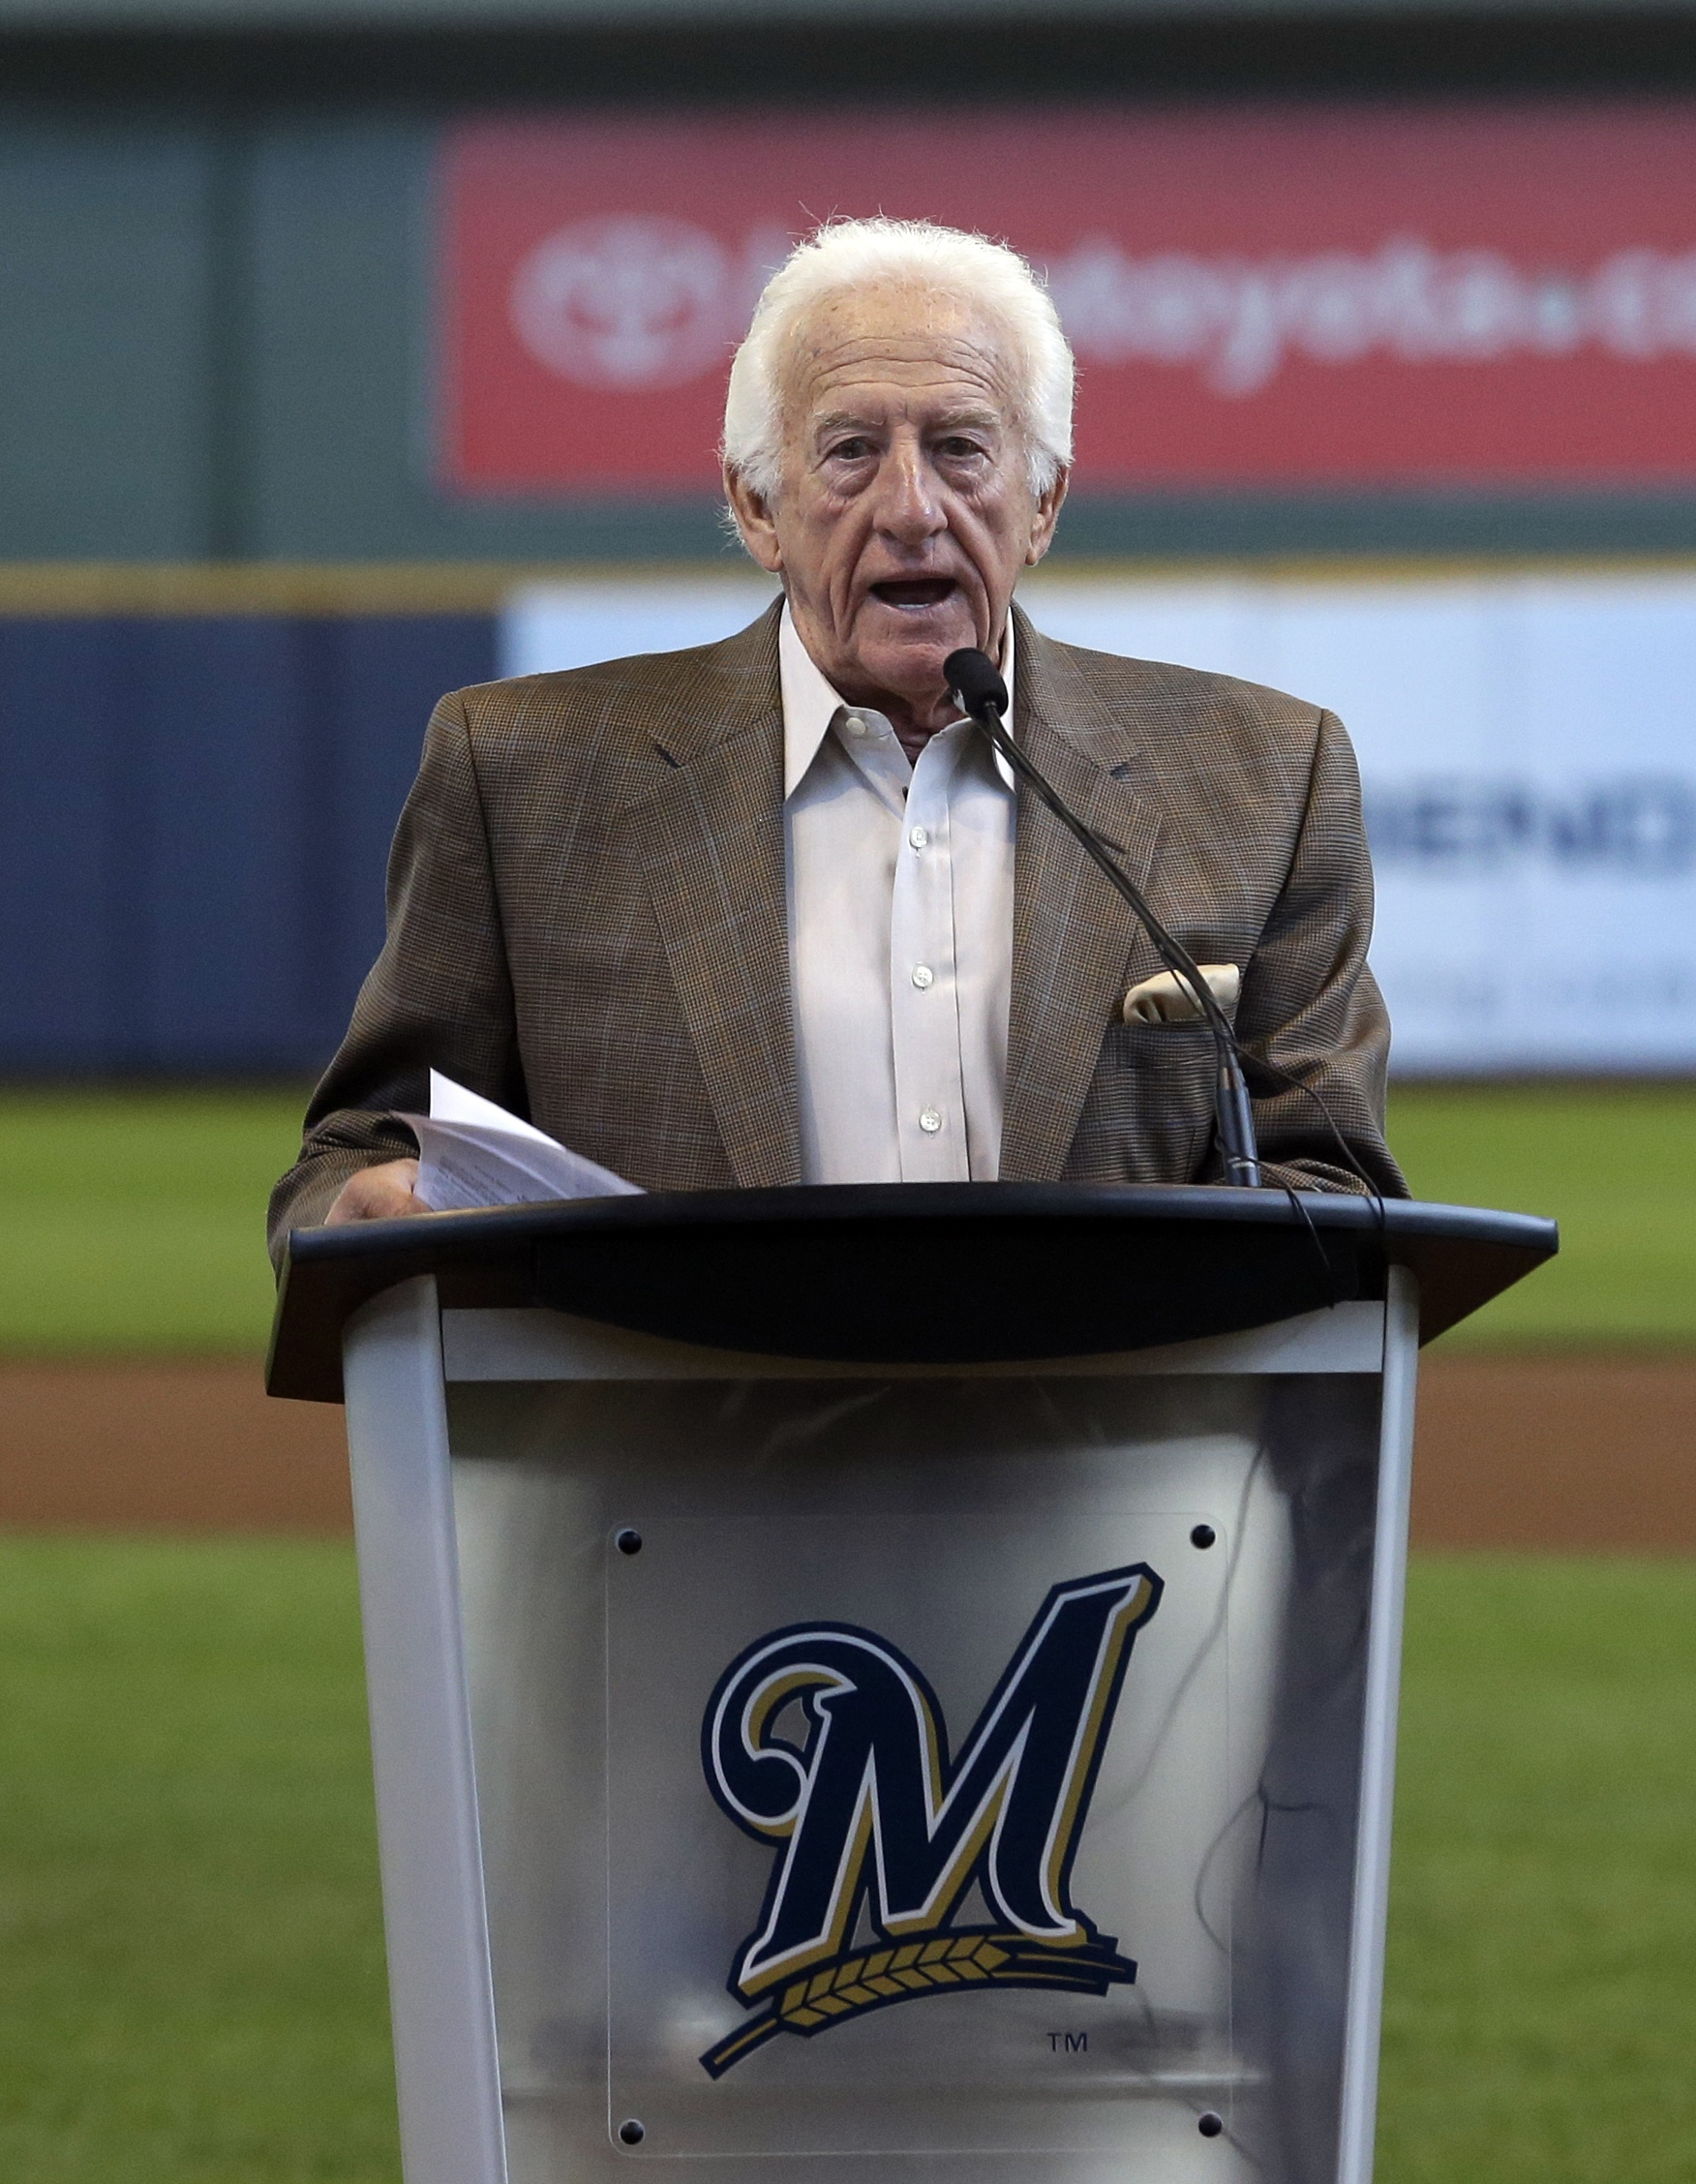 Milwaukee Brewers radio announcer Bob Uecker speaks at an event Friday, April 25, 2014, at Miller Park in Milwaukee. A statue of the Hall of Fame broadcaster will debut the Brewer's game against the Chicago Cubs. (AP Photo/Morry Gash)